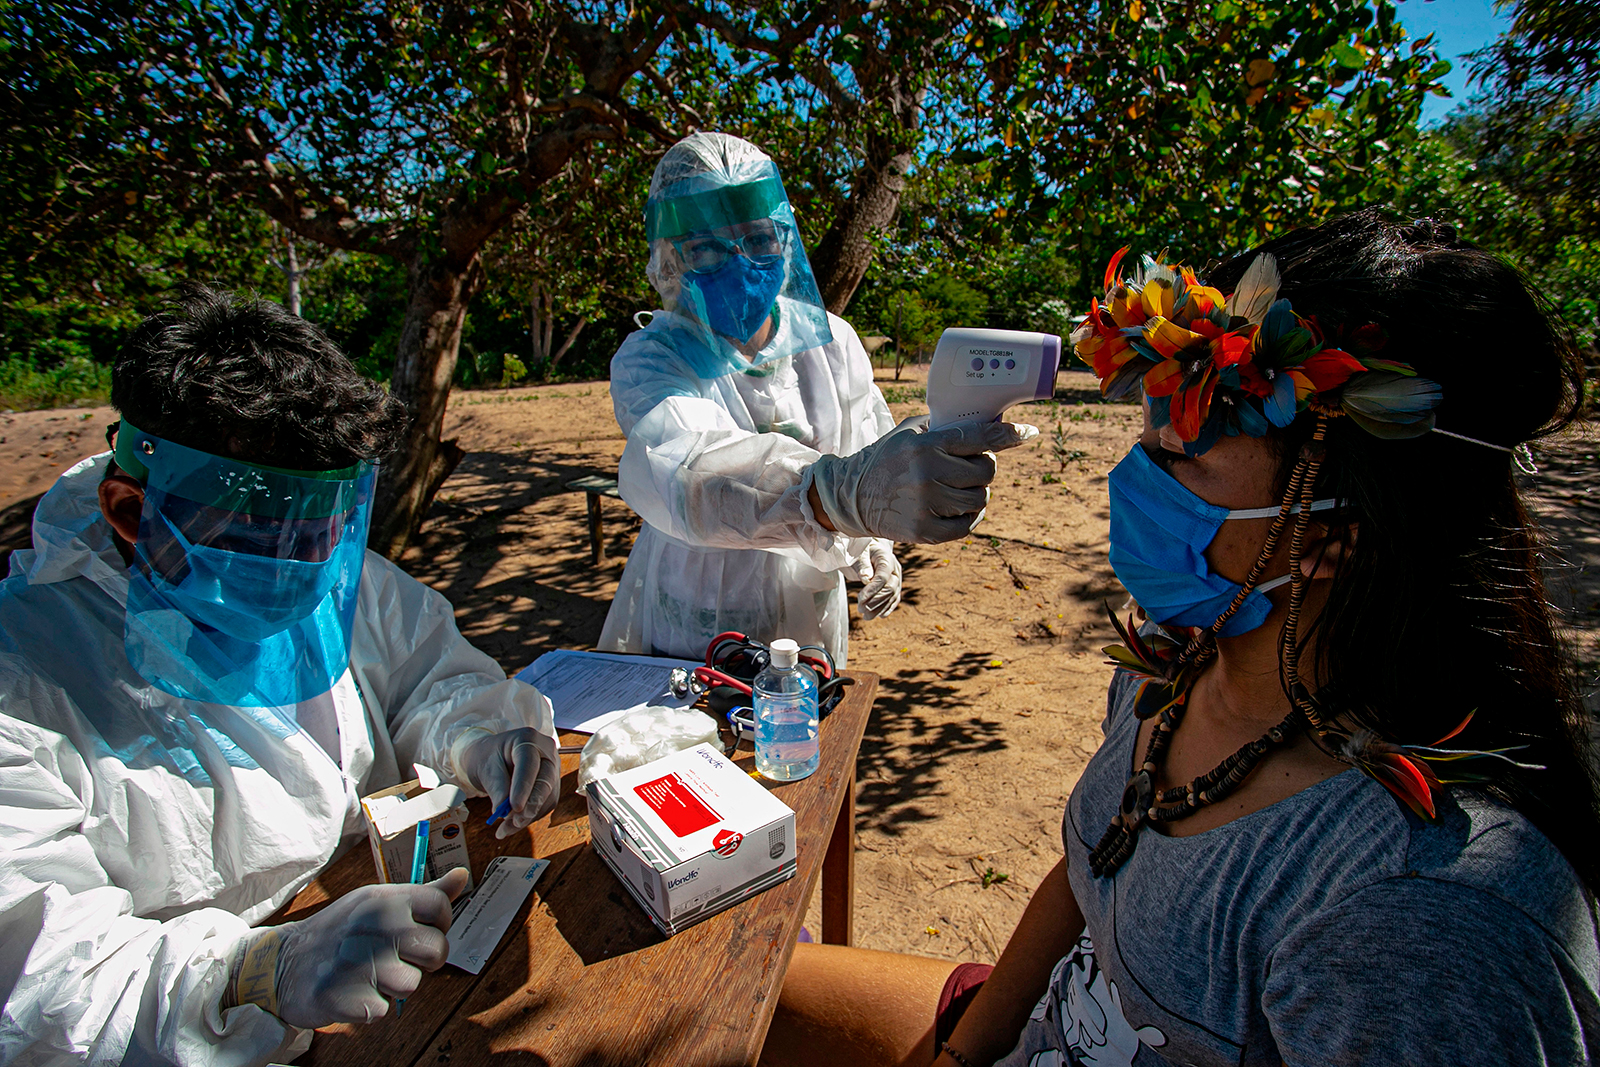 Indigenous nurses from the Special Secretariat for Indigenous Health (Sesai) of the Arapiuns ethnic group and Tapuia ethnic groups perform rapid COVID-19 testing on the banks of the lower Tapajos River in the municipality of Santarem in western Para on Sunday, July 19.